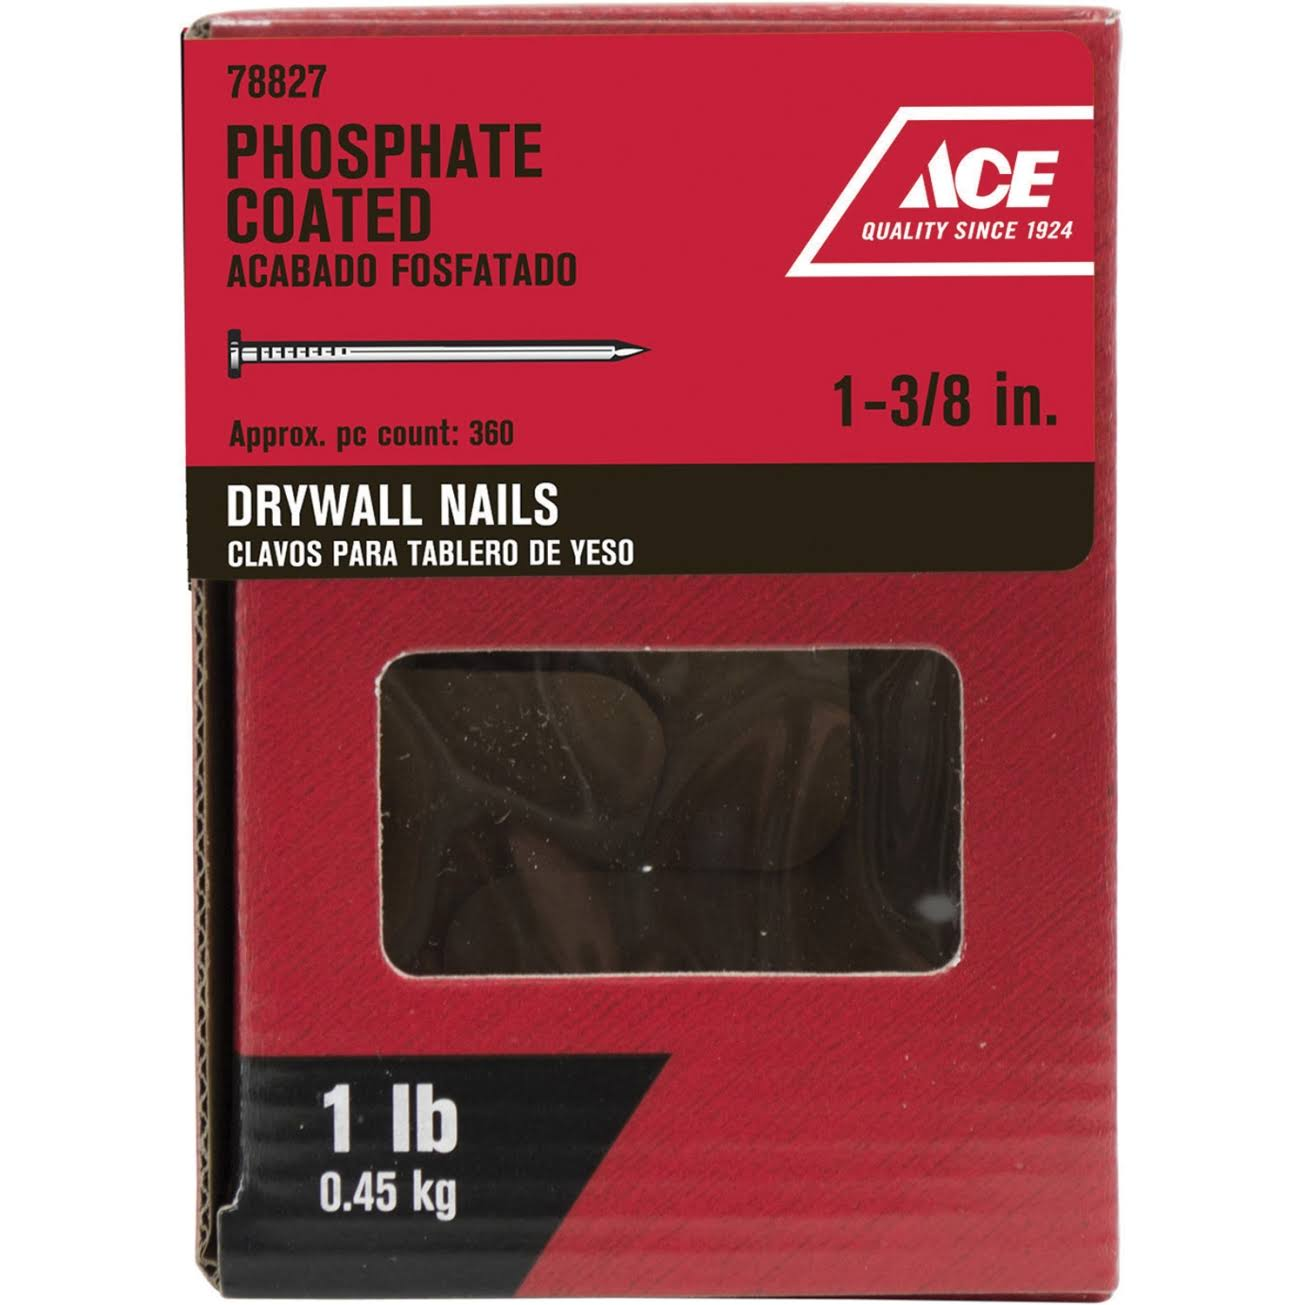 Fox Valley Steel And Wire Drywall Nails - Phosphate Coated